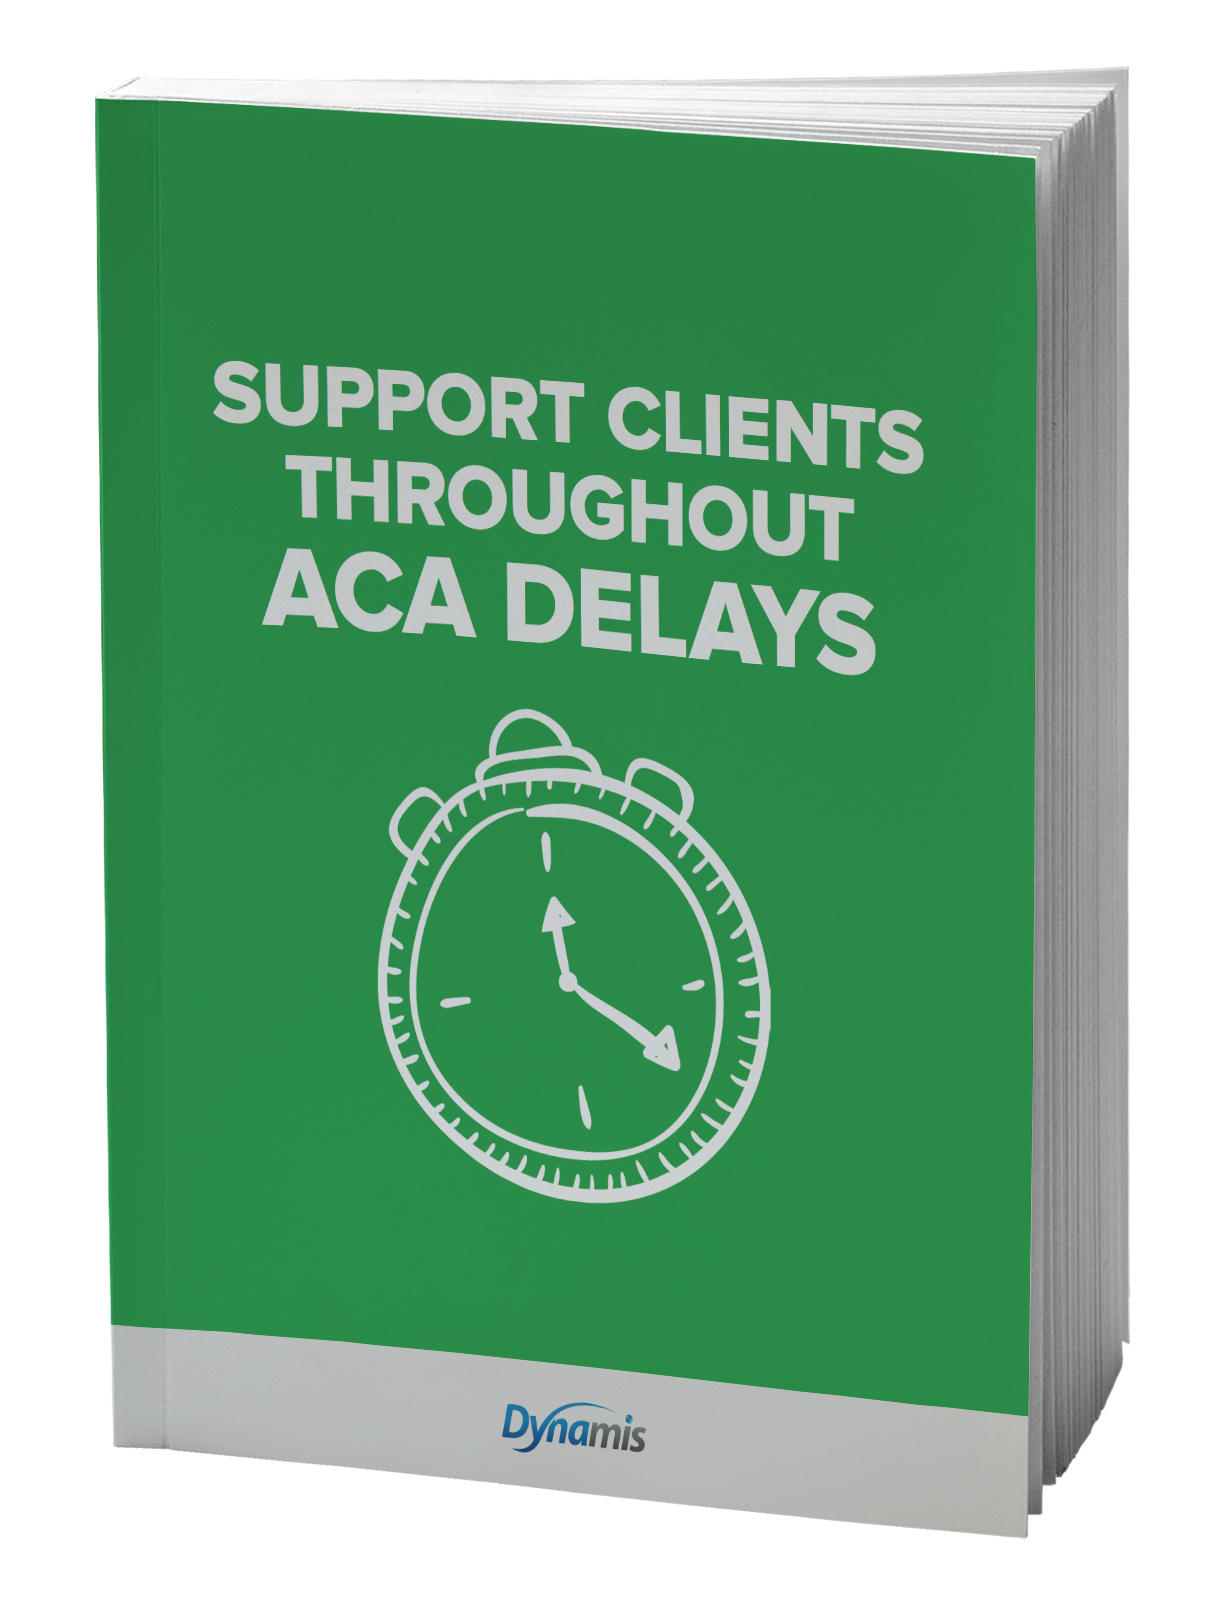 Support Clients throughout ACA delays